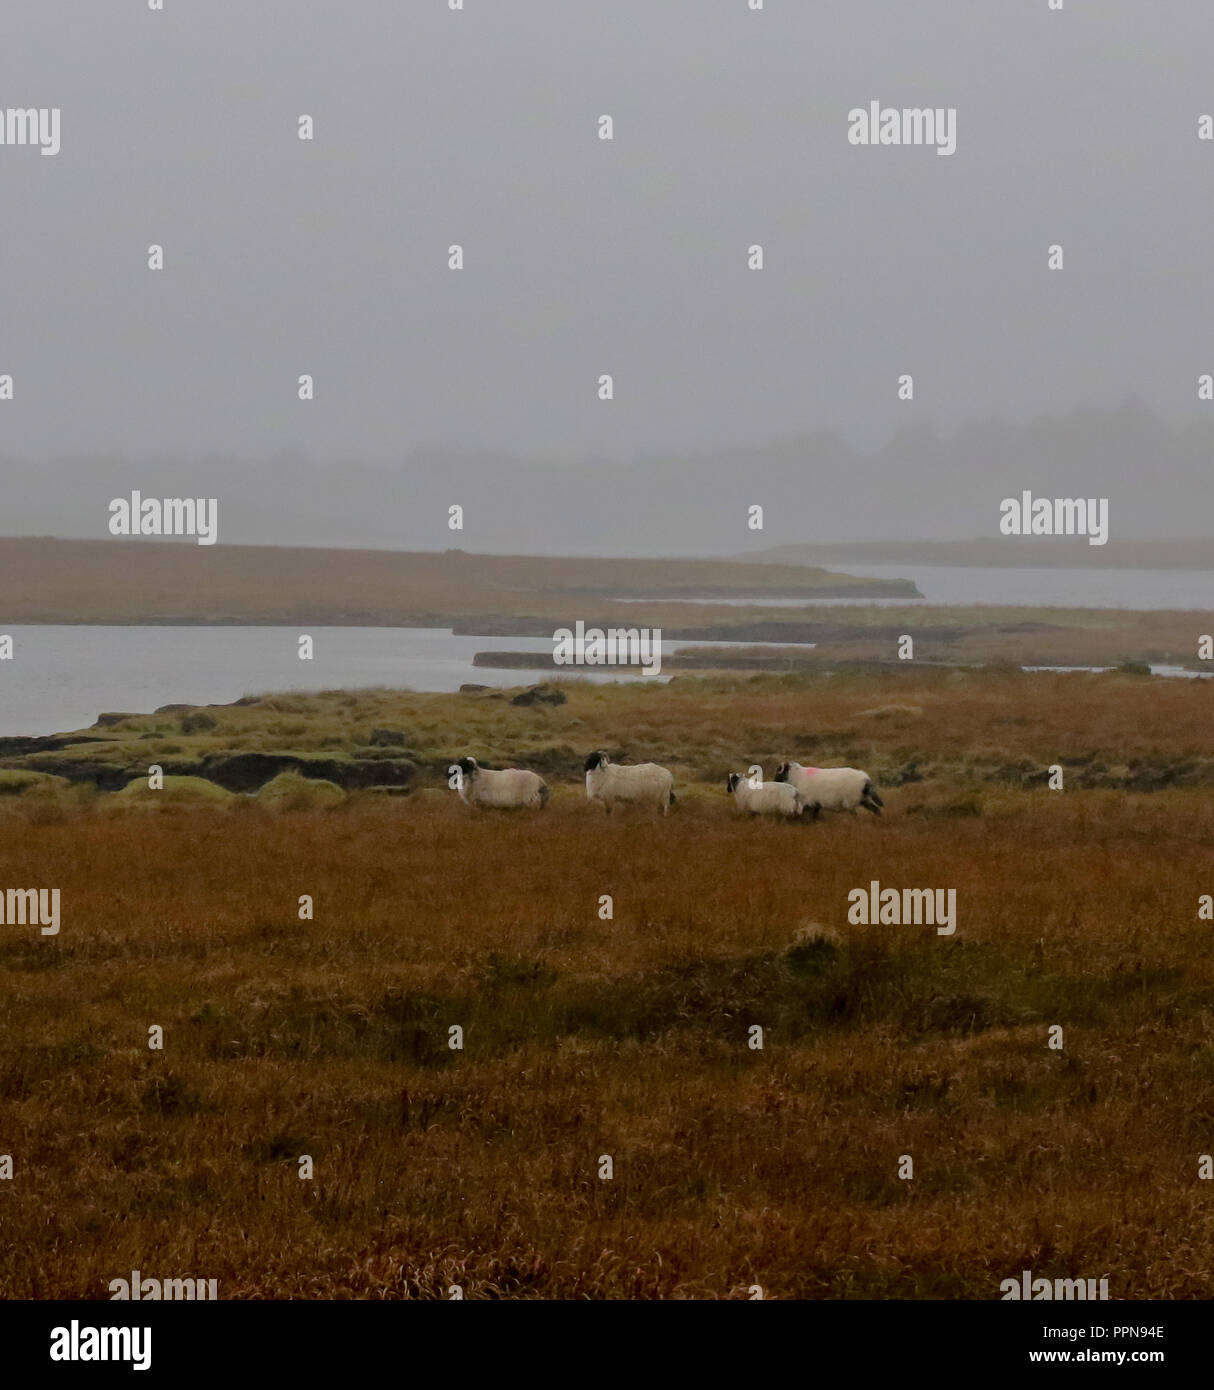 Ballycroy, County Mayo, Ireland. 27 September 2018. Irish weather - a grey day with widespread drizzle on the west coast of County Mayo. Sheep on bogland at Ballycroy. Credit:David Hunter/Alamy Live News. - Stock Image